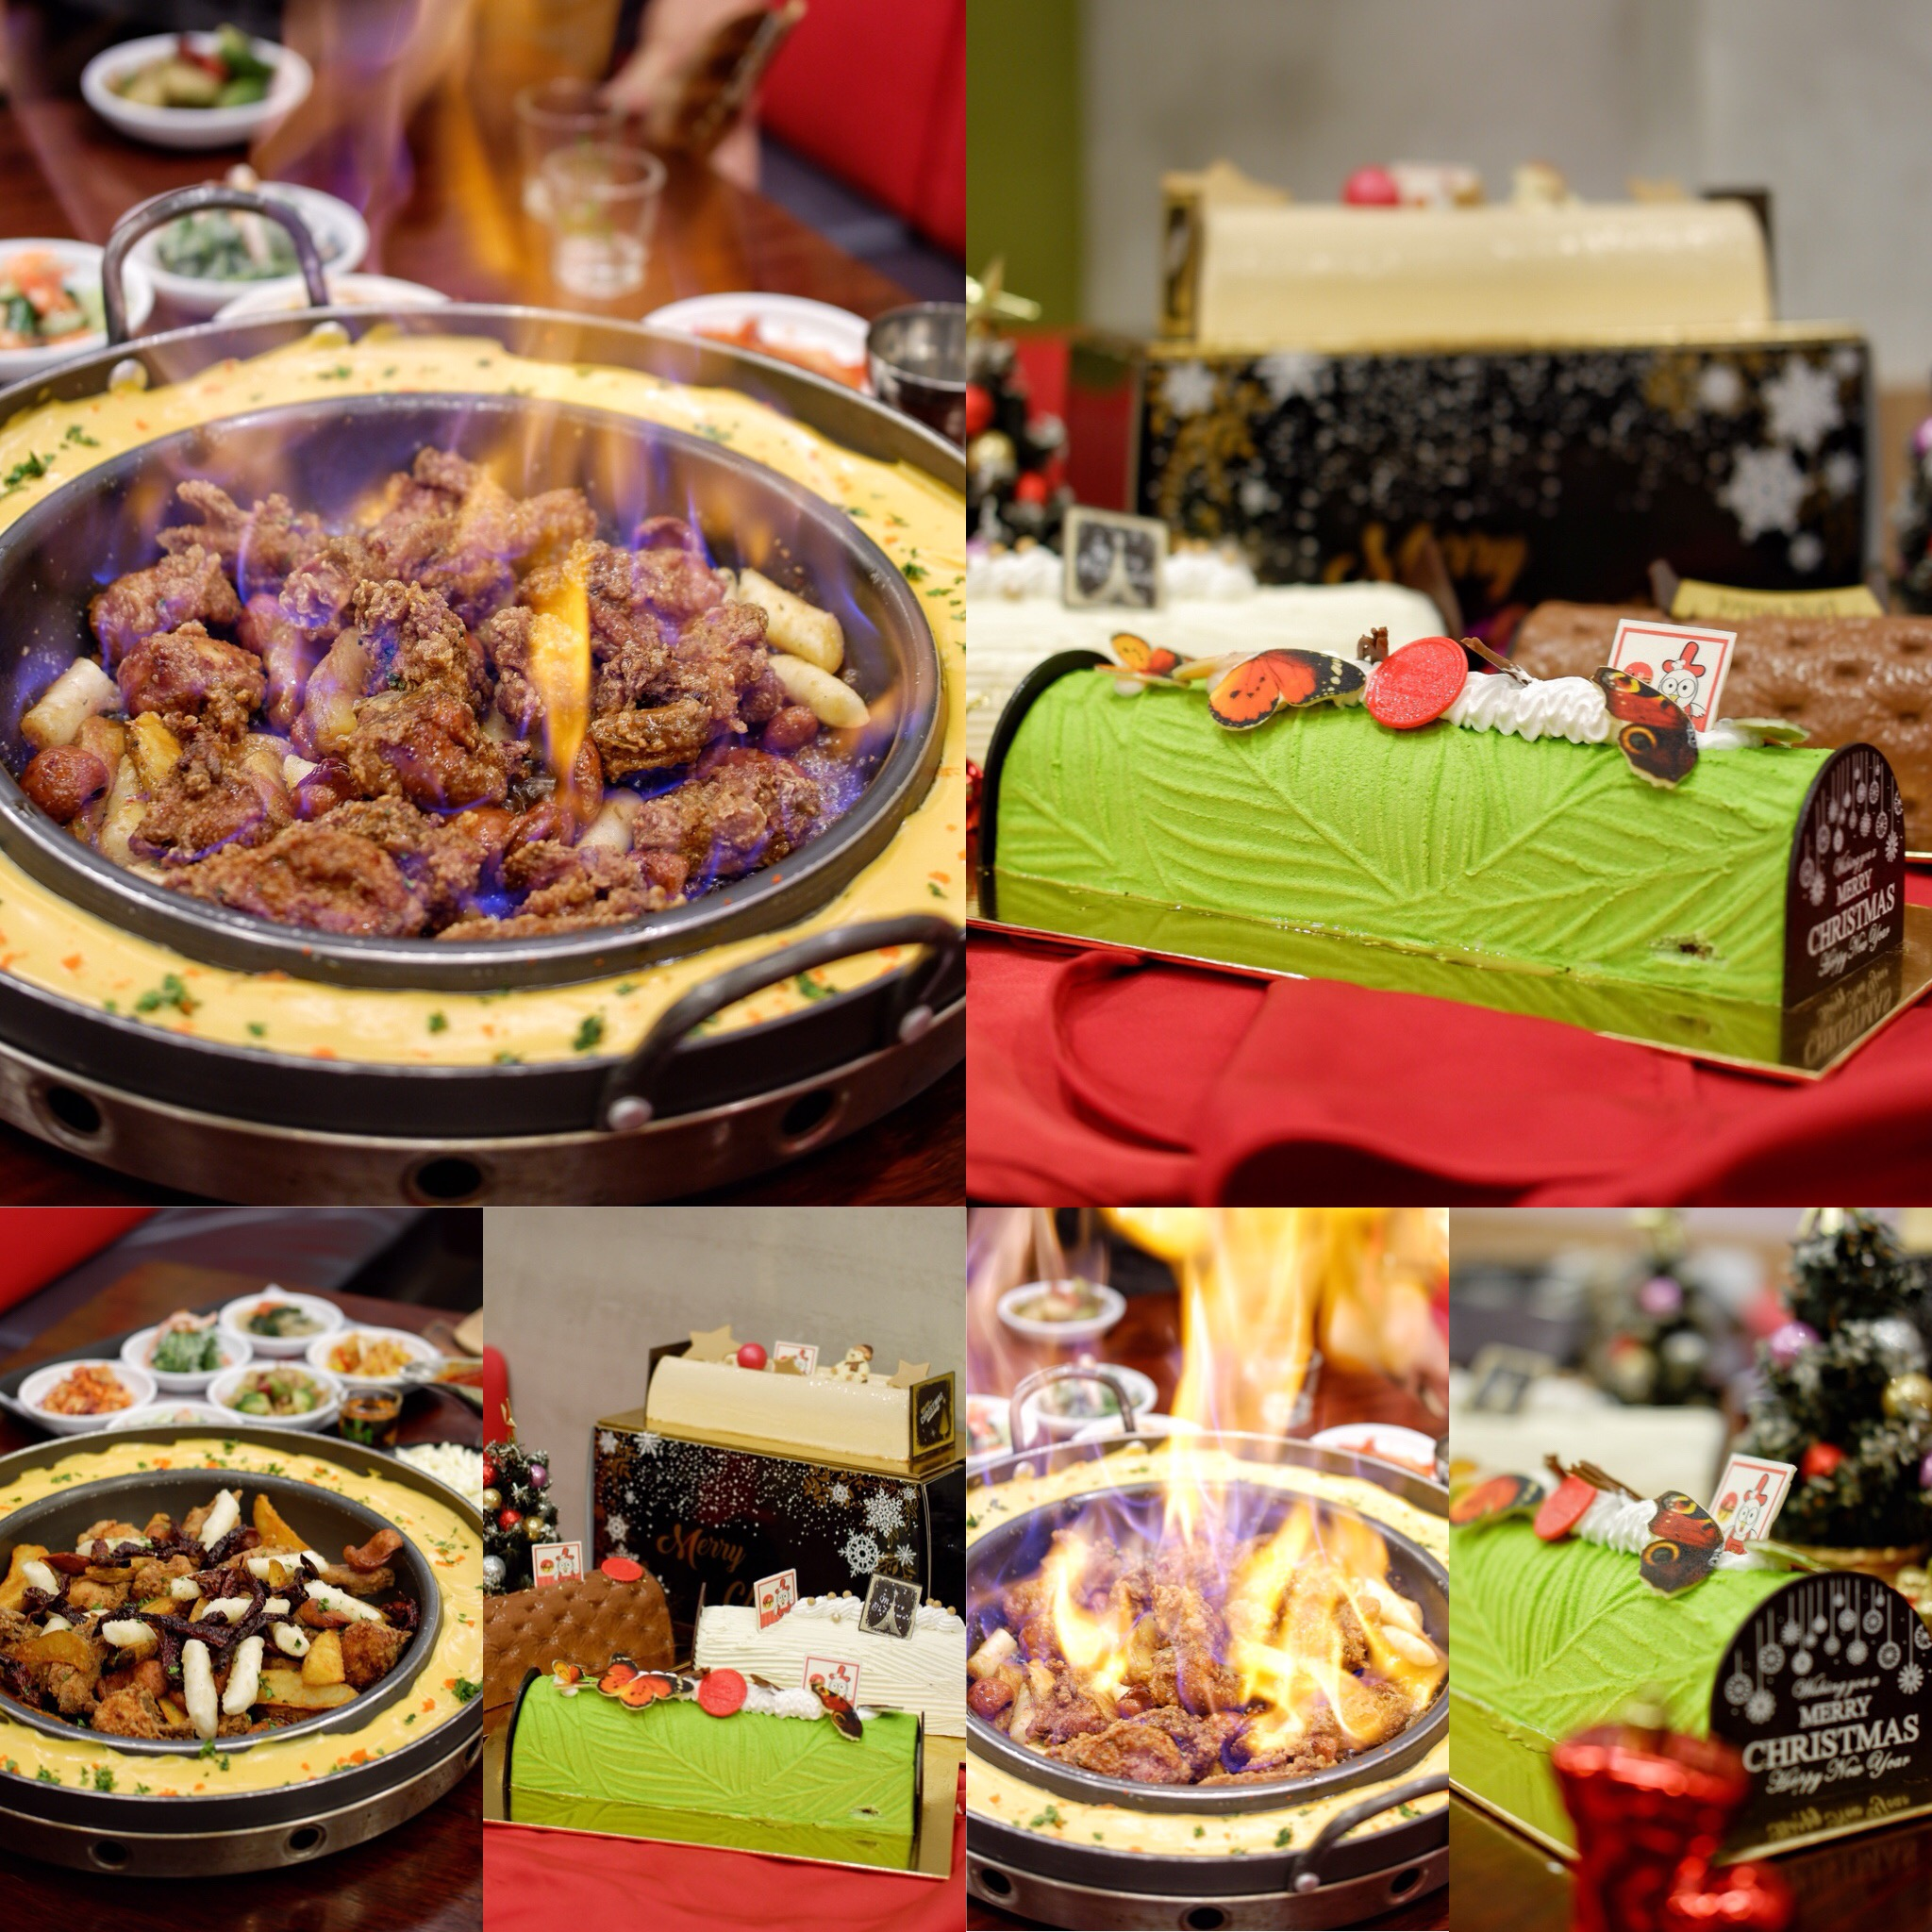 Yoogane Singapore: Celebrate Christmas with Theatrical 'Flaming' Chicken & Festive Log Cakes such as Matcha Sesame & Sweet Potato!